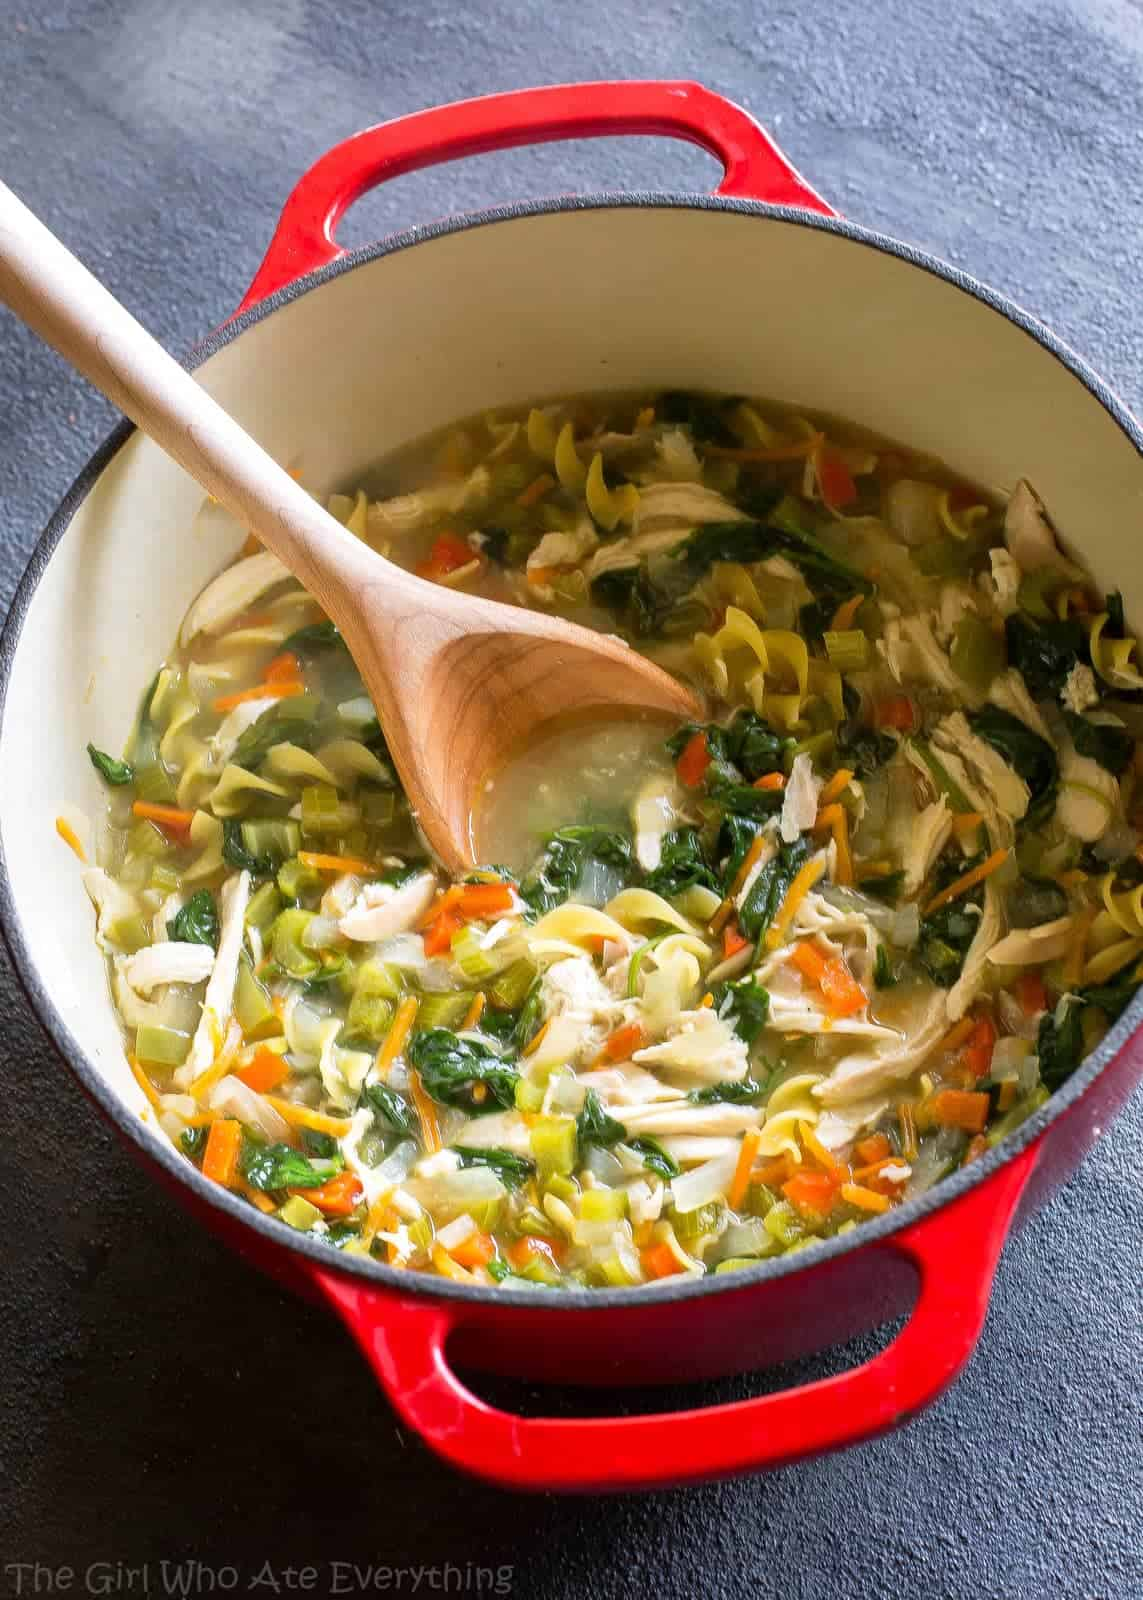 Healthy Vegetable Chicken Soup - this soup is FULL of veggies and great to detox when you need to eat healthy! the-girl-who-ate-everything.com